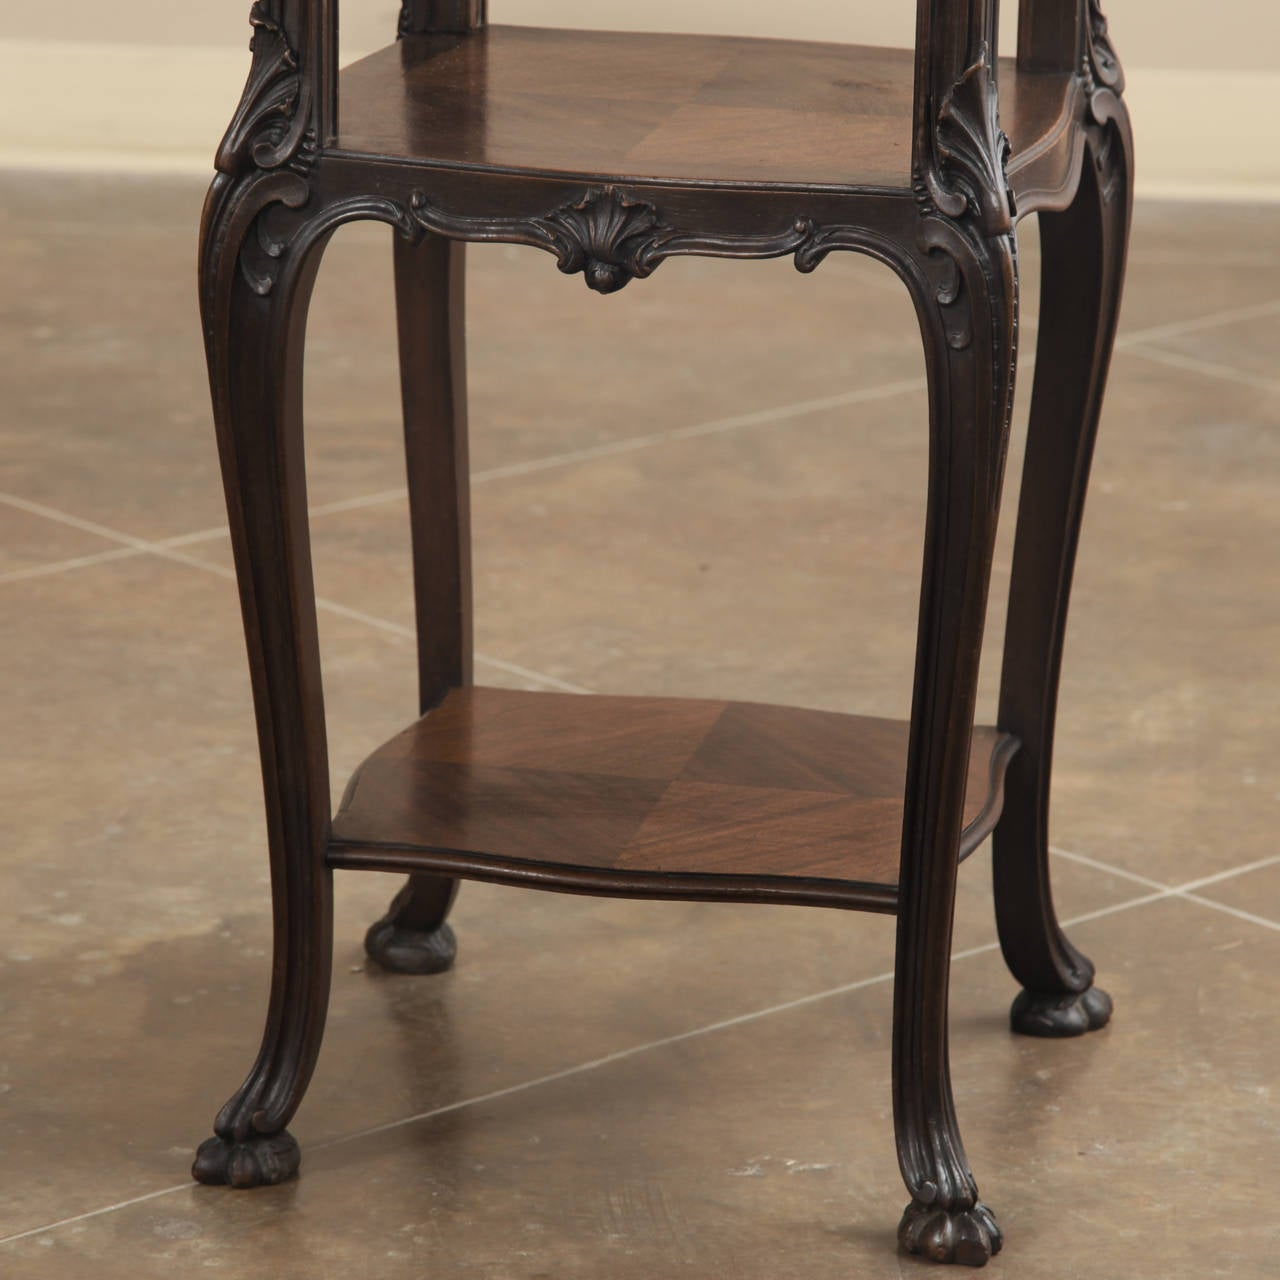 Hand-Carved 19th Century French Antique Solid Rosewood Onyx Top Nightstand or Lamp Table For Sale